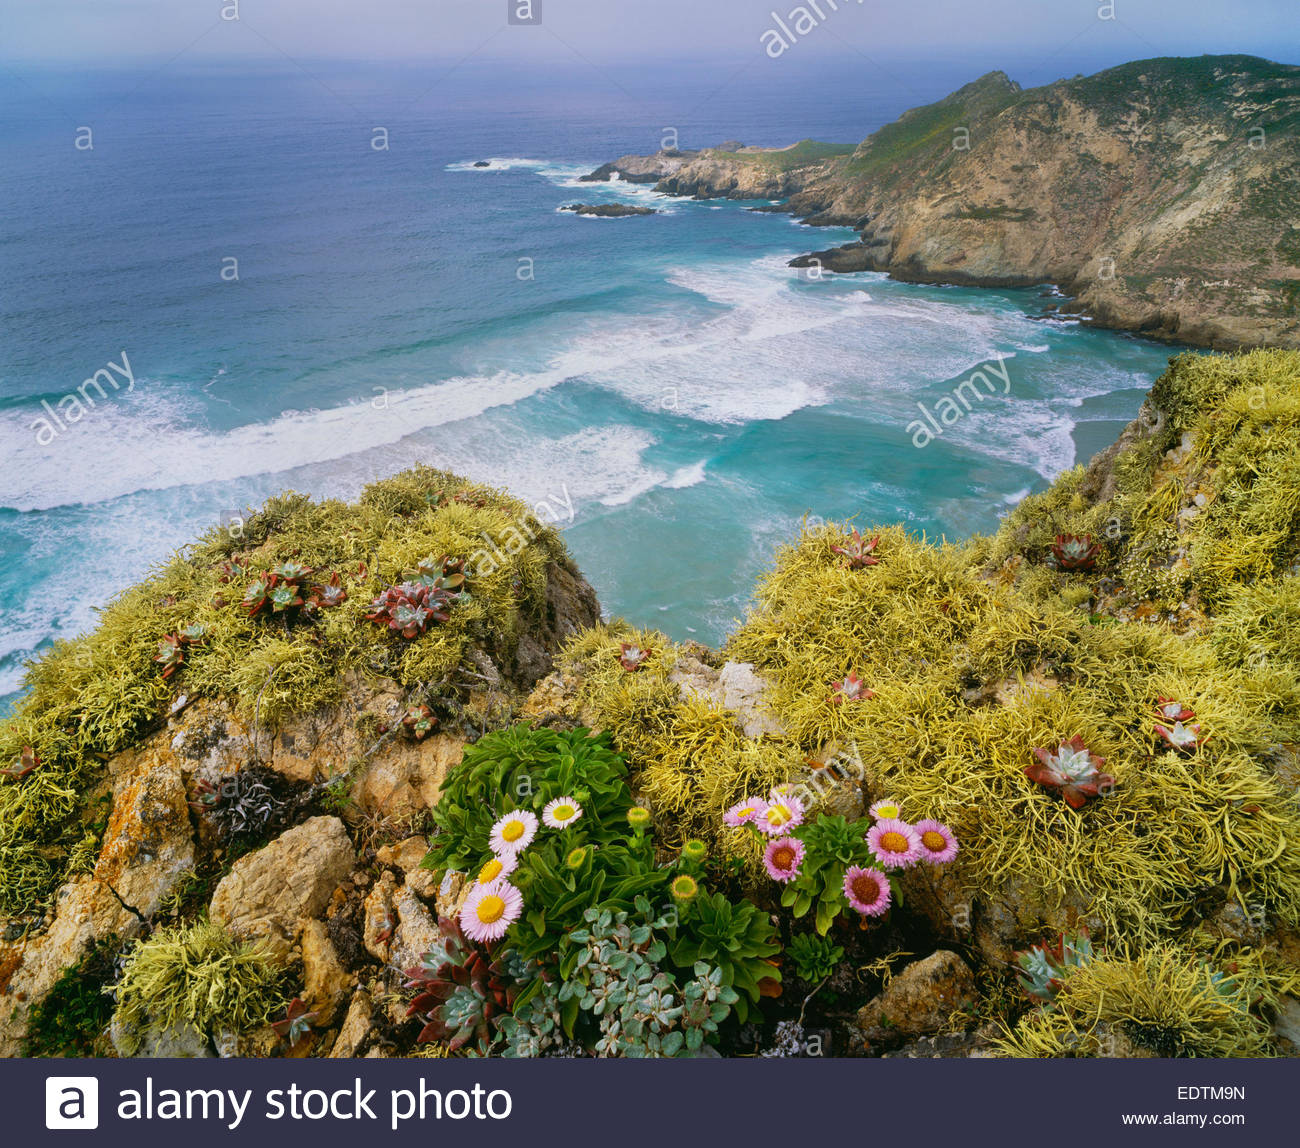 Harris-Punkt mit Meer Margeriten und Flechten.  San Miguel Island.  Channel Islands Nationalpark, Kalifornien Stockbild